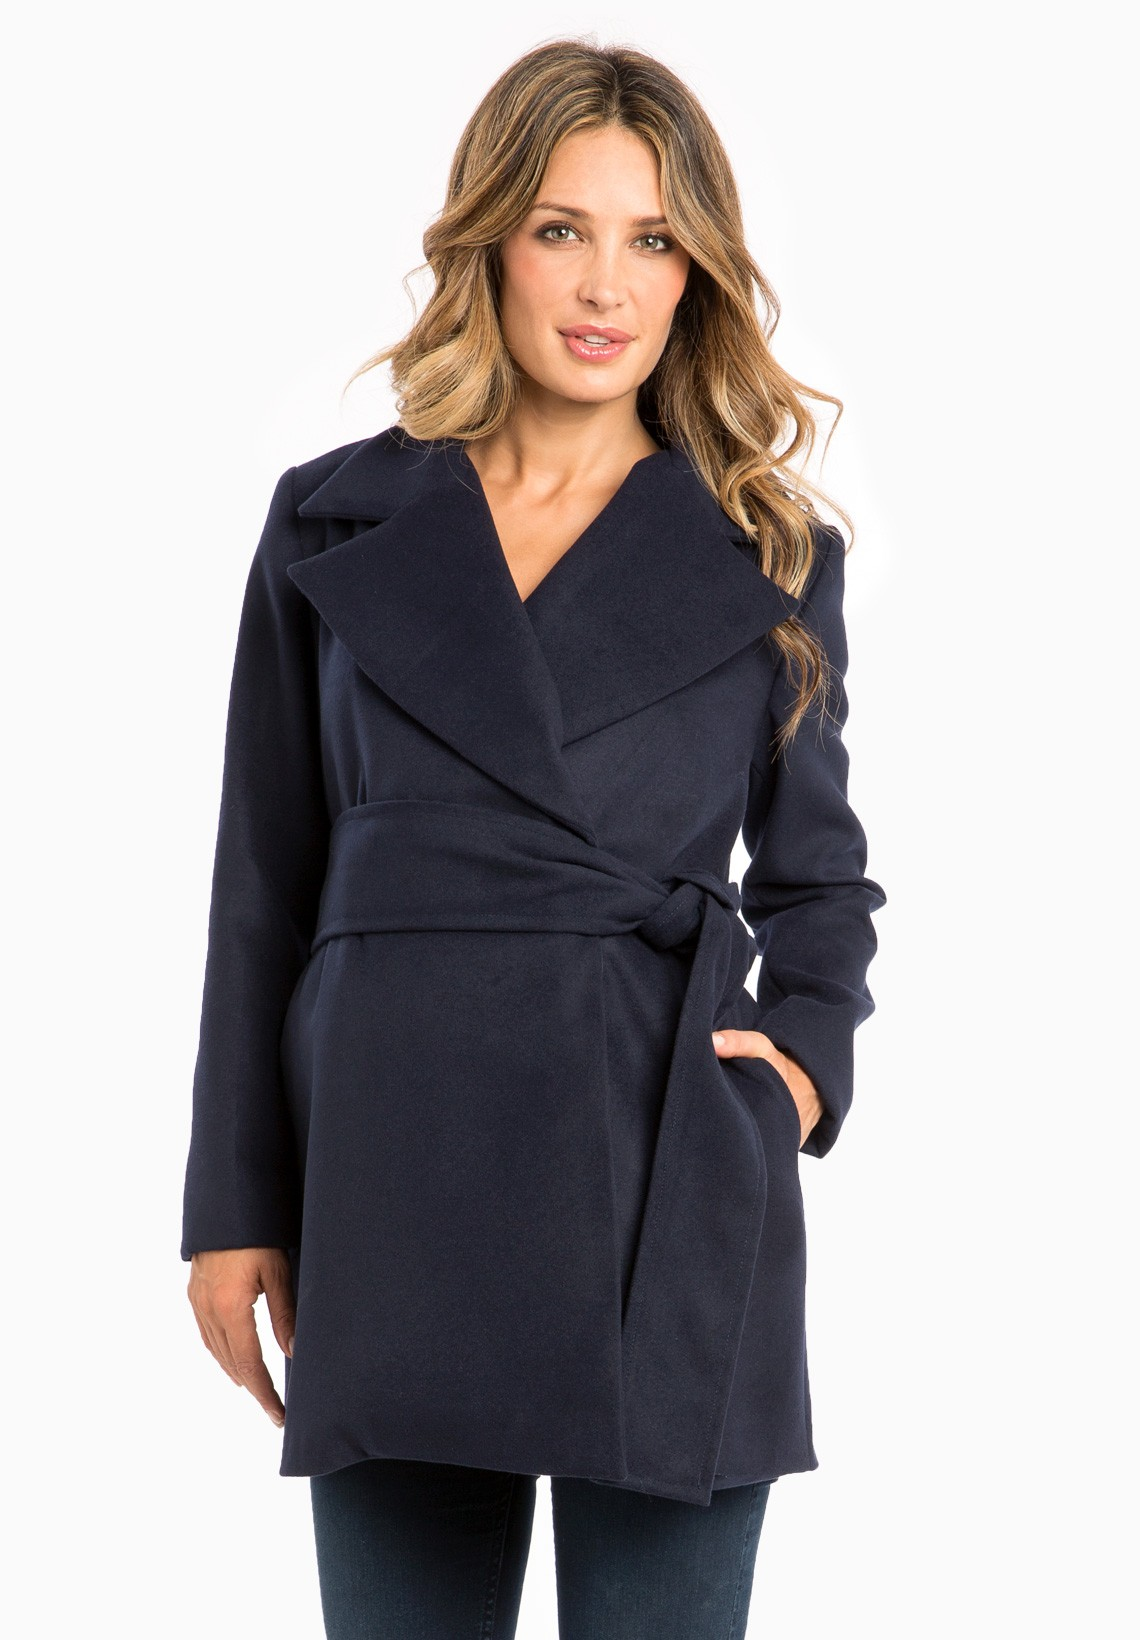 Shop the latest maternity clothes at Macy s. We ve got a variety of trendy and chic pregnancy clothing including maternity dresses, pants, jeans and more! Macy's Presents: The Edit- A curated mix of fashion and inspiration Check It Out. Free Shipping with $49 purchase + Free Store Pickup. Contiguous US.